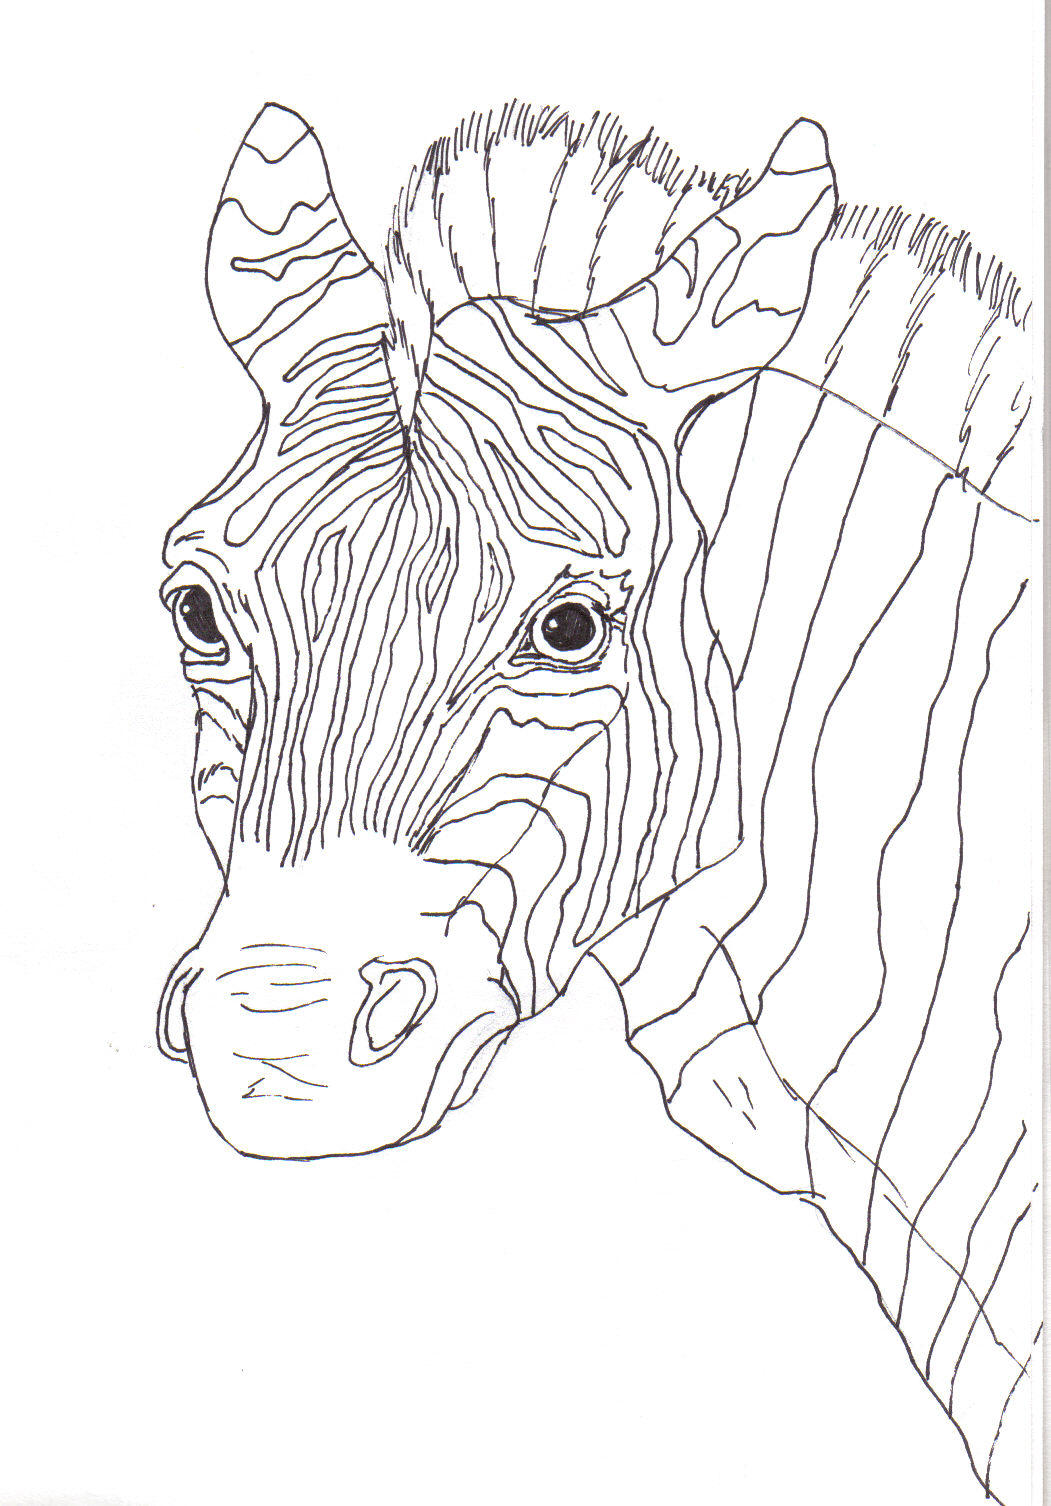 Line Drawing Zebra : Zebra line art by canislupes on deviantart